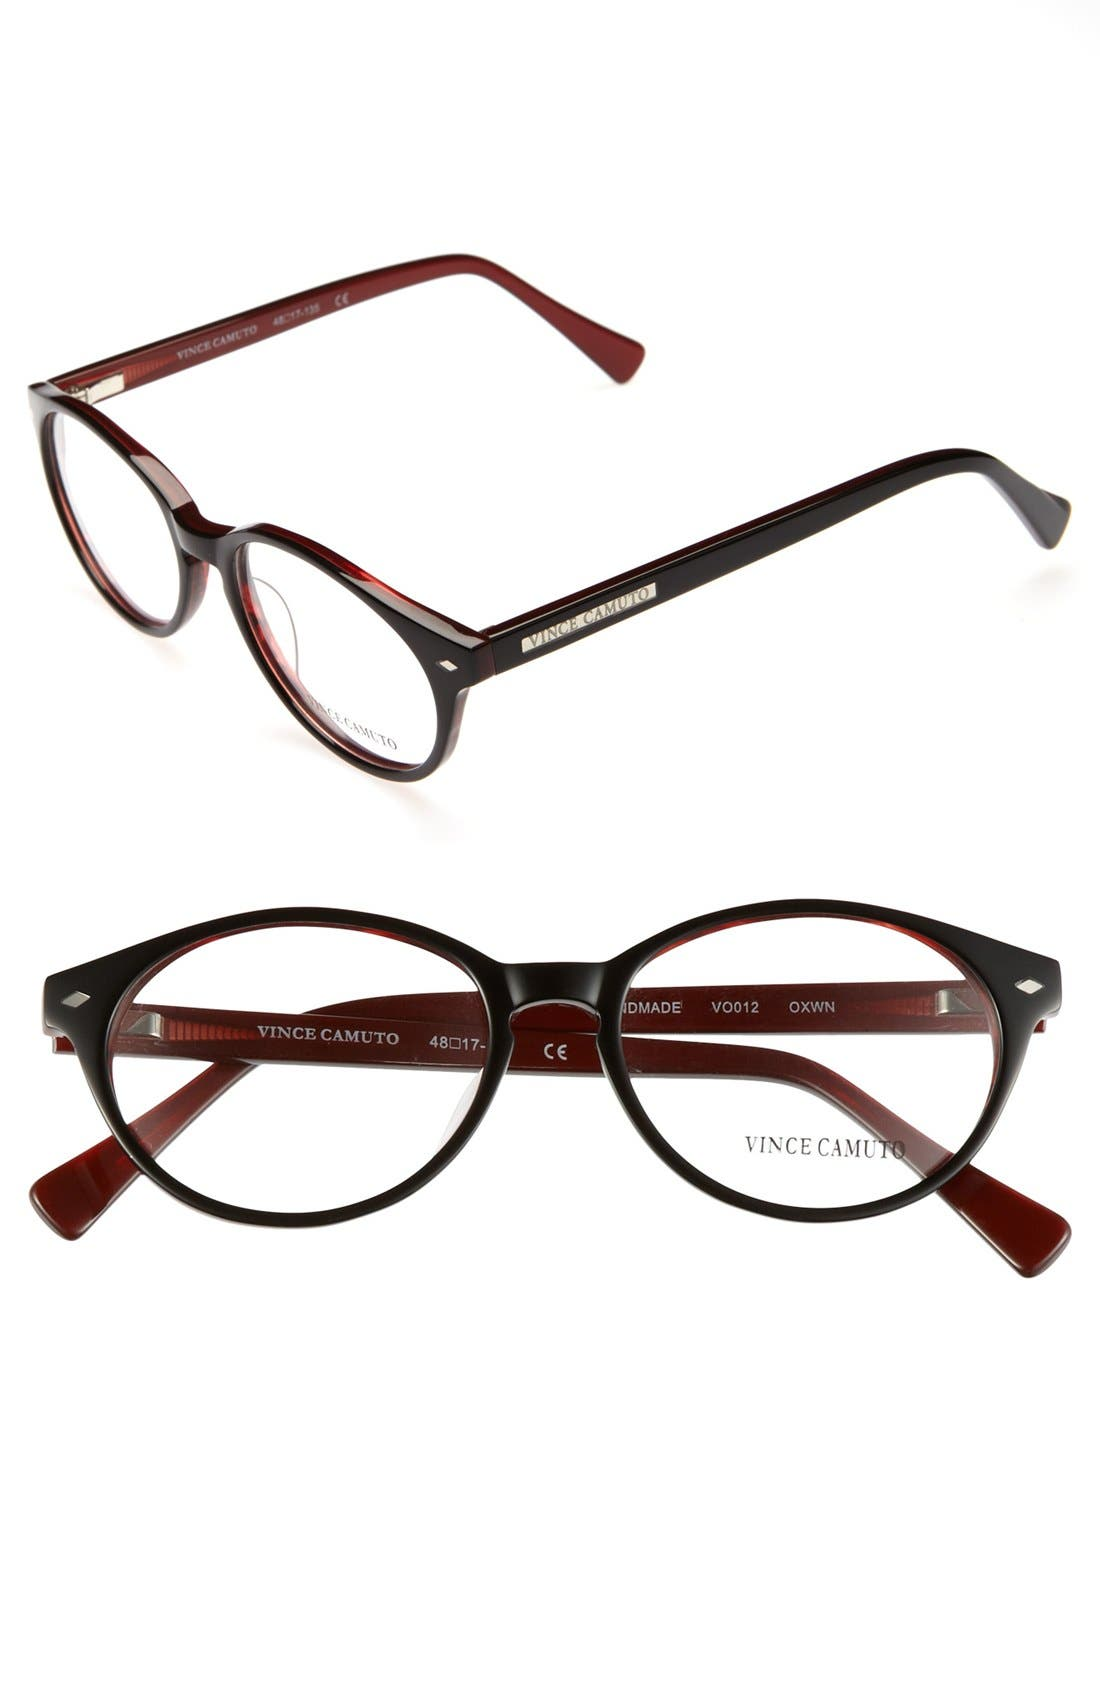 Main Image - Vince Camuto Optical Glasses